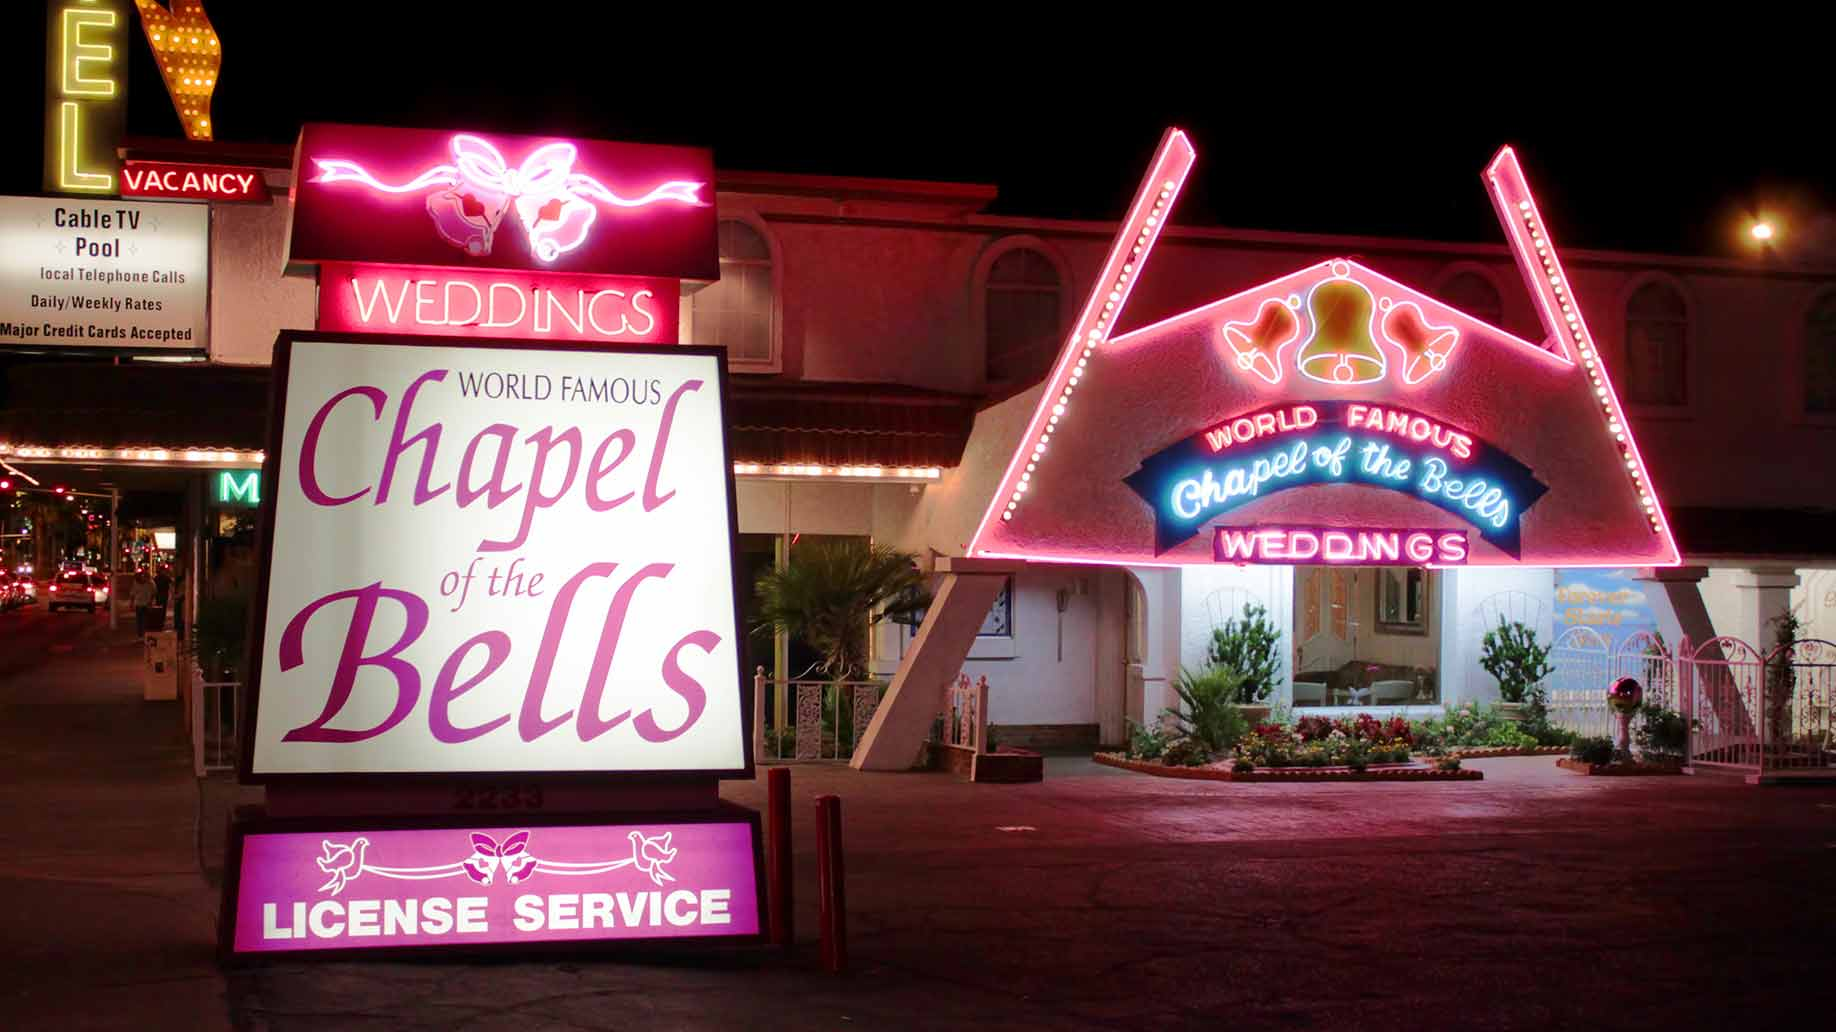 getting married las vegas wedding cost prices vegas wedding chapels las vegas wedding chapel